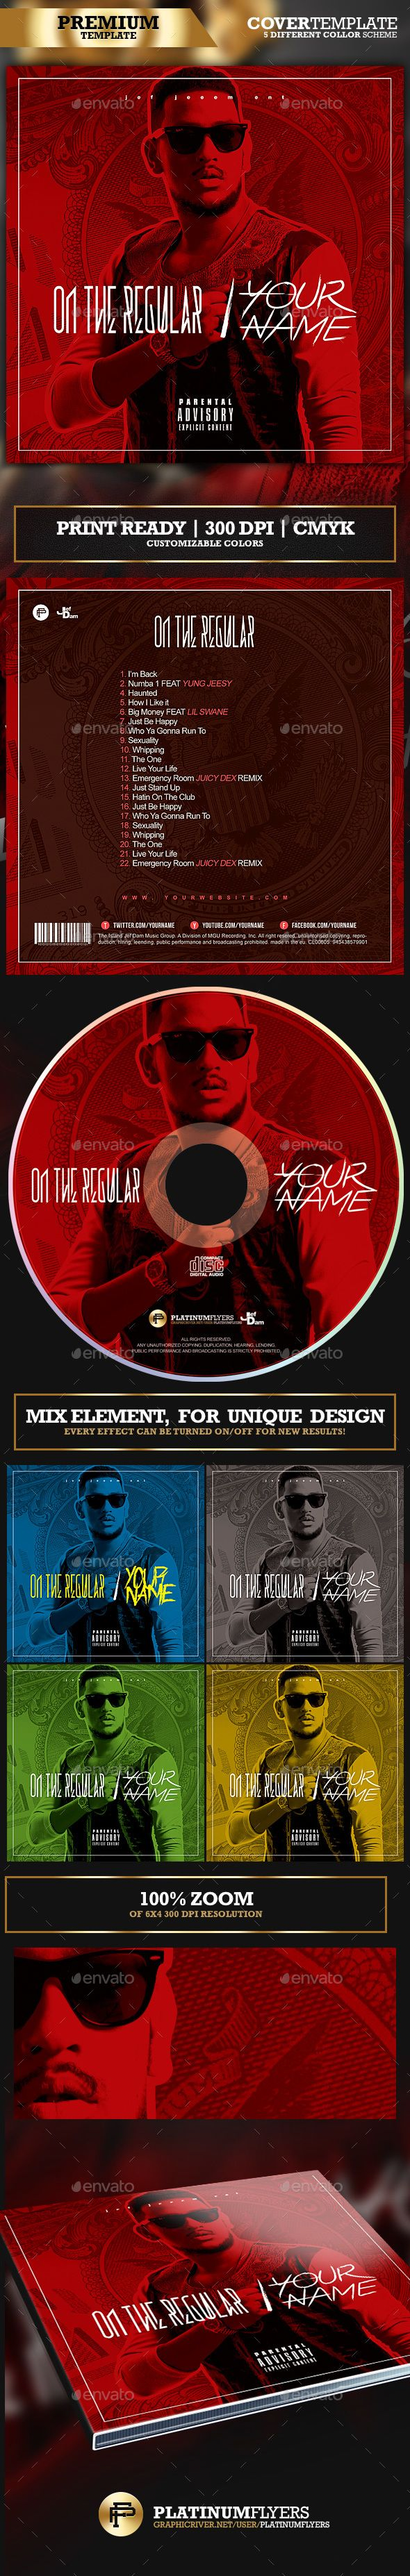 On The Regular Trap Mixtape Album #CD #Cover Template - Print #Templates Download here: https://graphicriver.net/item/on-the-regular-trap-mixtape-album-cd-cover-template/19537265?ref=alena994